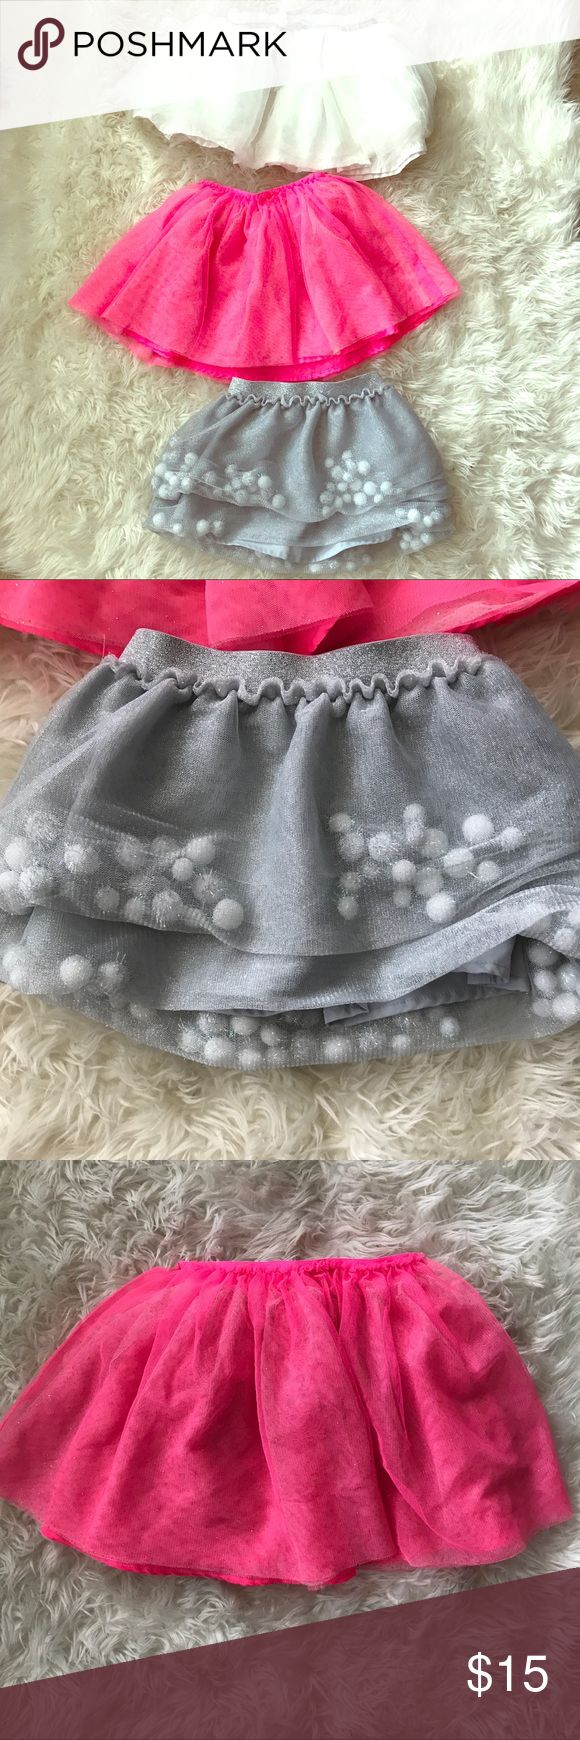 Bundle Girls Tutus (see description for size info) 3 Tutus ranging from size 18m - 4T. They should all fit between 2-4 yr old. From cat & jack and carters. Bottoms Skirts